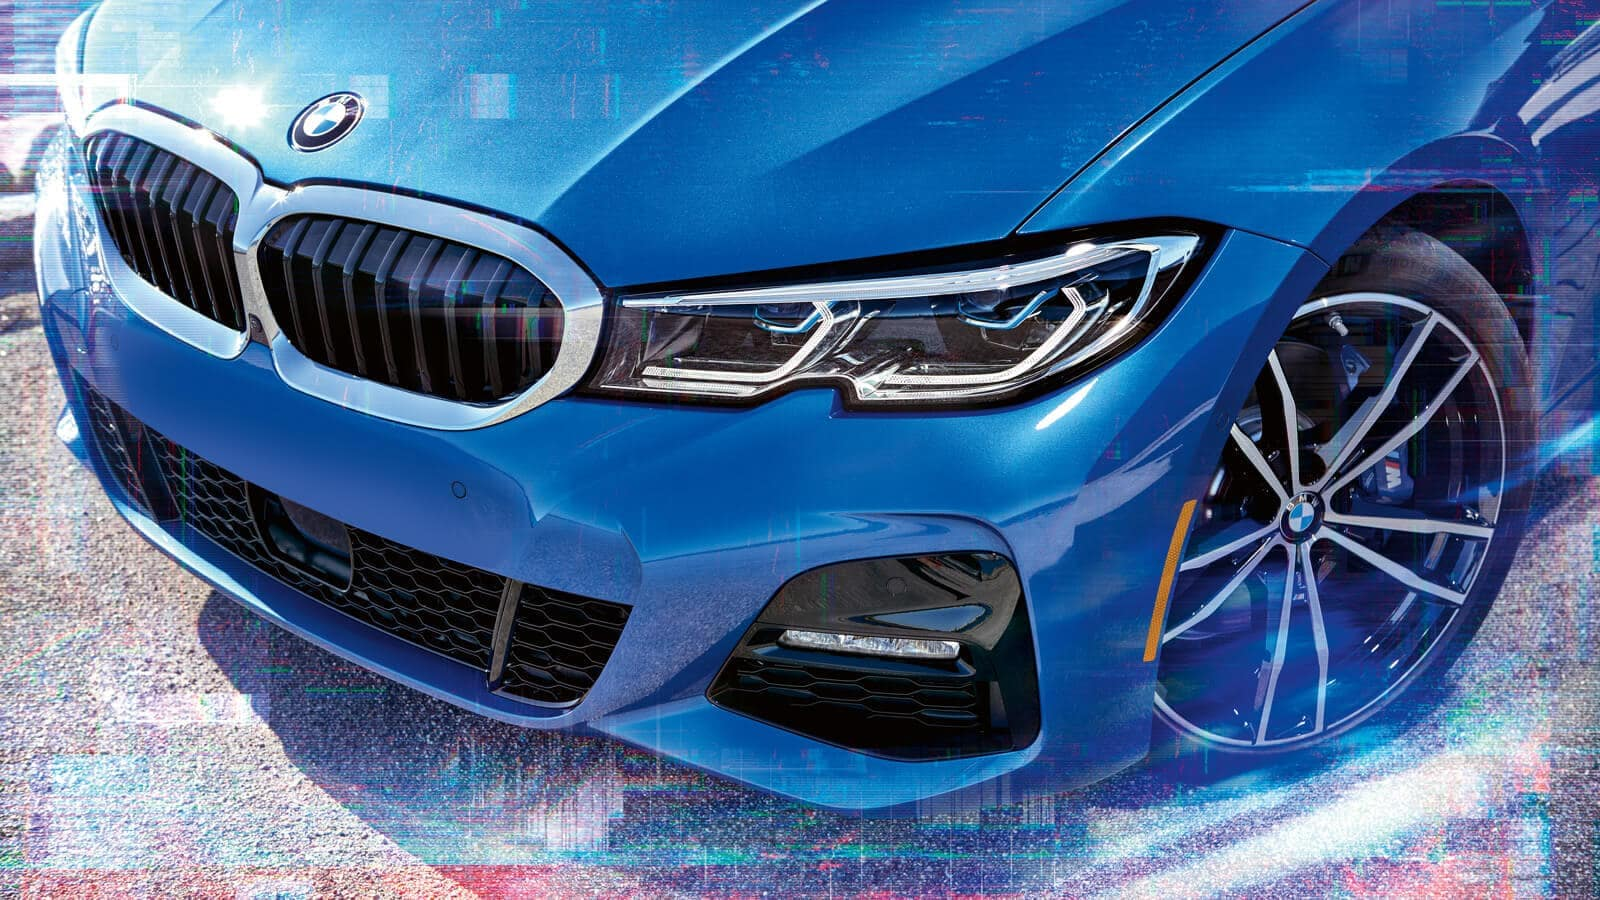 2019-BMW-3-Series-portimao-blue-metallic